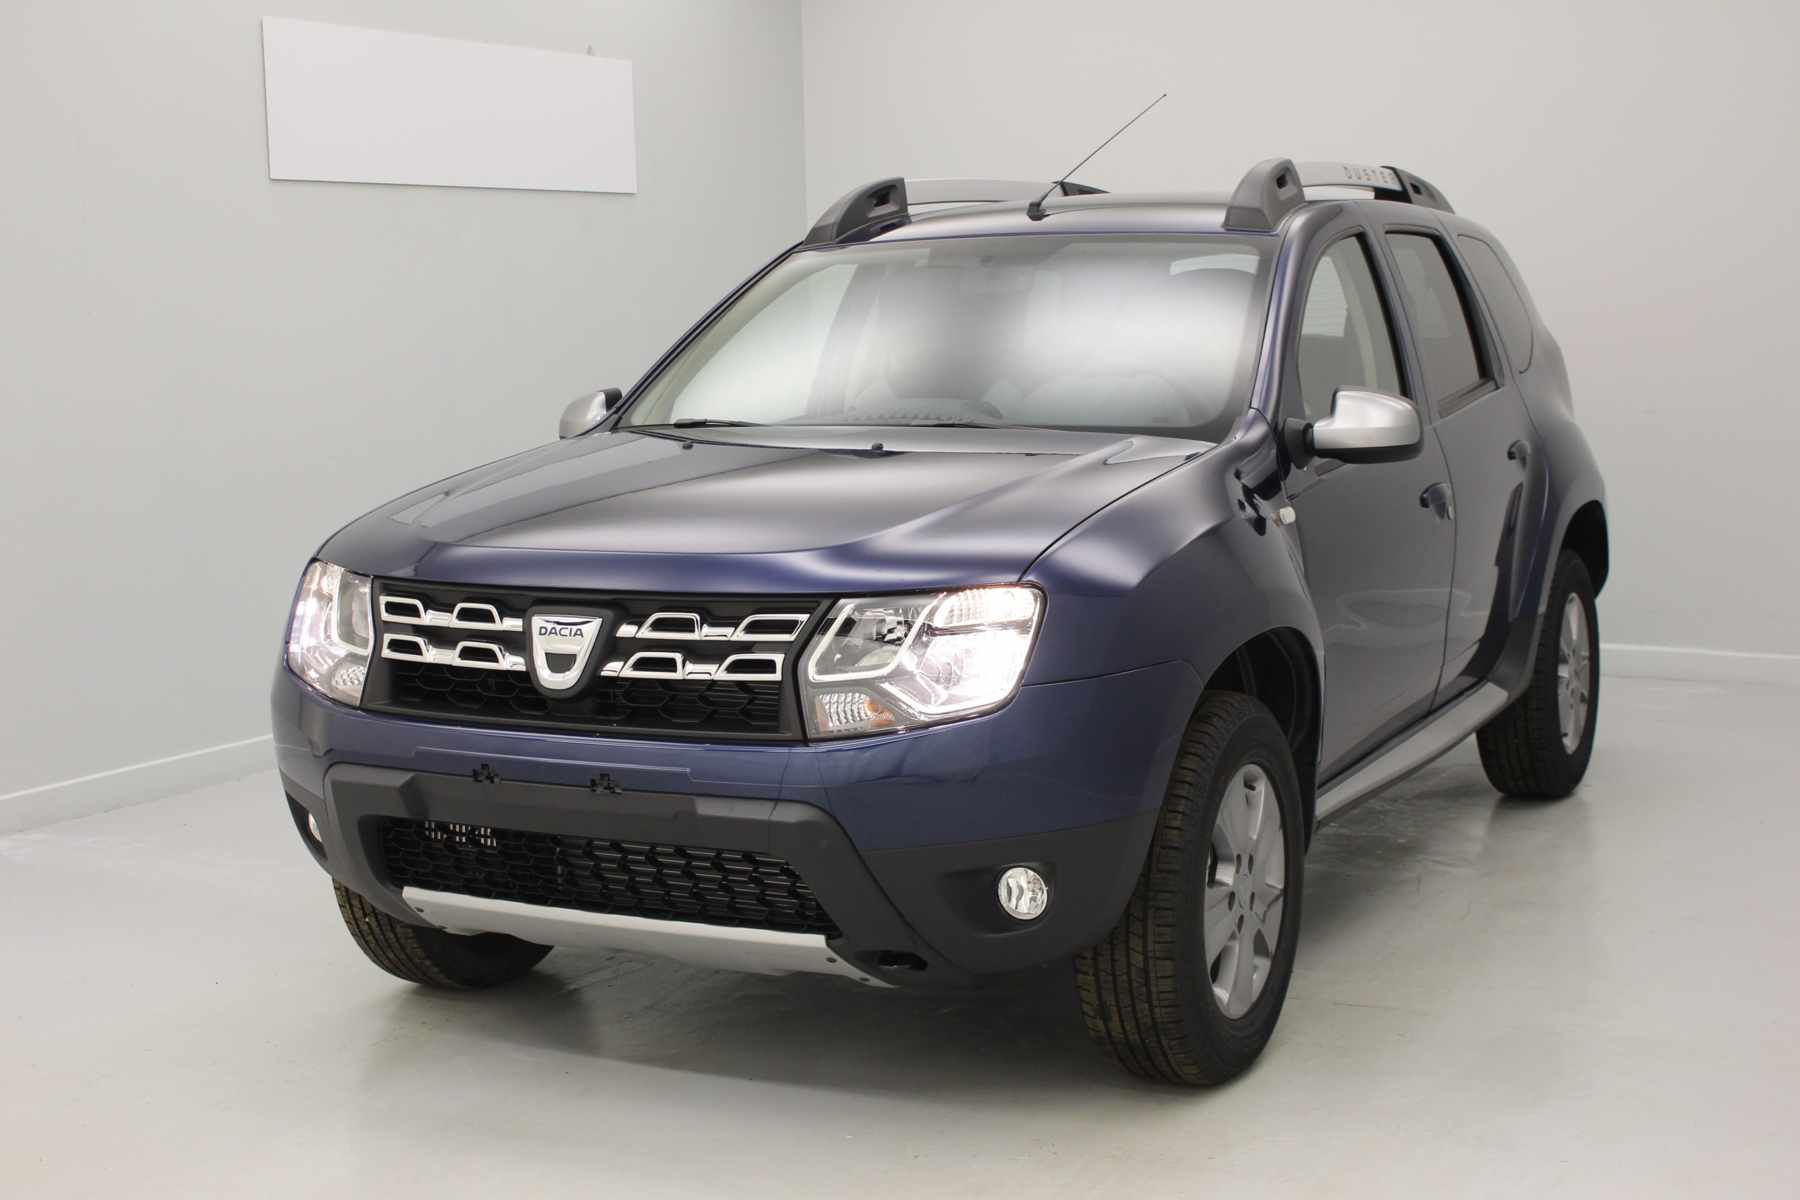 DACIA Duster dCi 110 4x4 Lauréate Plus 2017 Bleu Cosmos + Media Nav Evolution  + Pack look extérieur avec options